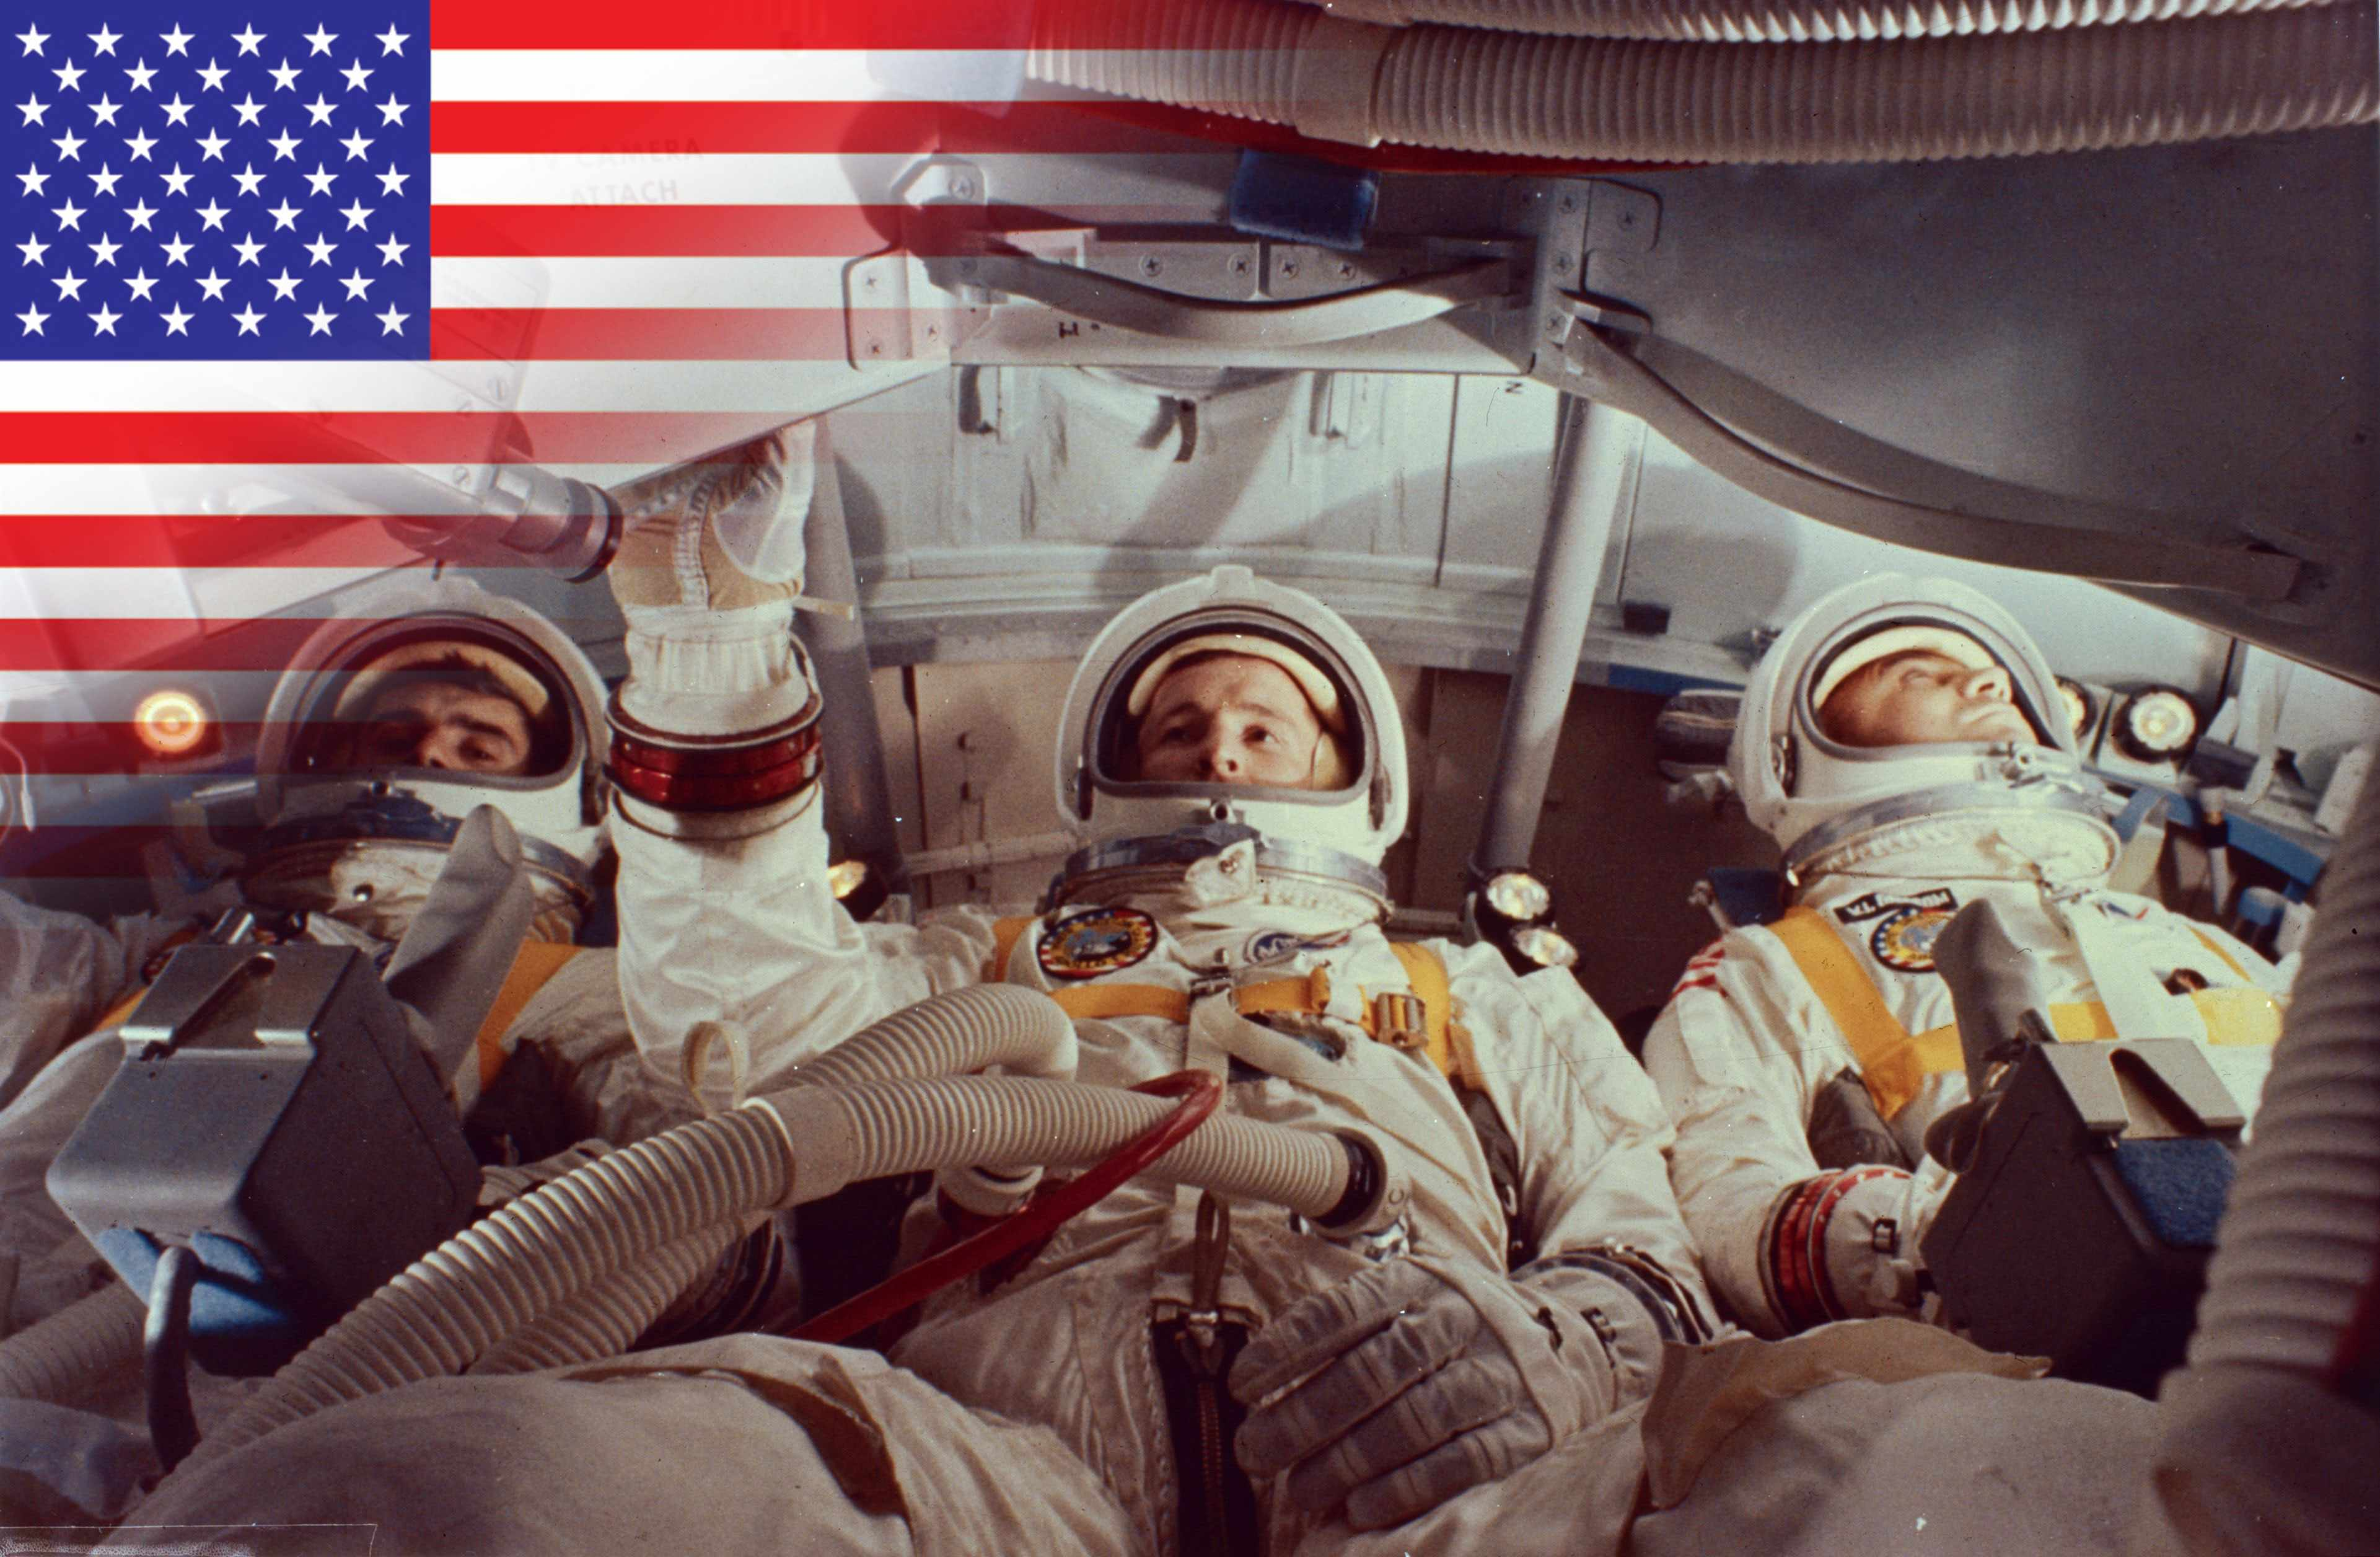 Virgil I Grissom, Edward White and Roger Chaffee inside a practice module for the aborted Apollo 1 mission at Cape Kennedy, Florida. All three men were killed when a fire swept through the oxygenated Command Module during a pre-flight test on 27th January, 1967. (Photo by MPI/Getty Images)